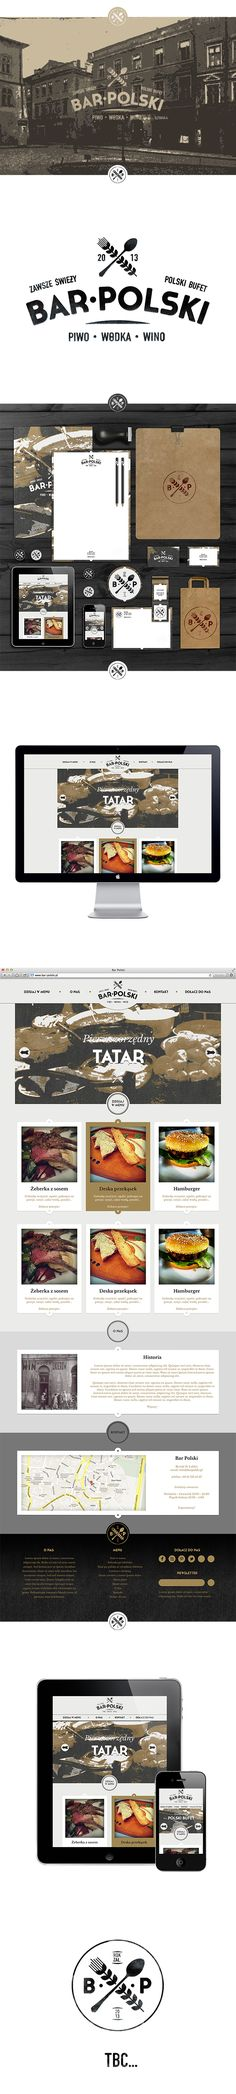 Restaurant branding - print and web design, good mix of retro and modern - love the black and white photography Corporate Design, Brand Identity Design, Graphic Design Branding, Typography Design, Packaging Design, Logo Design, Corporate Identity, Food Branding, Restaurant Branding